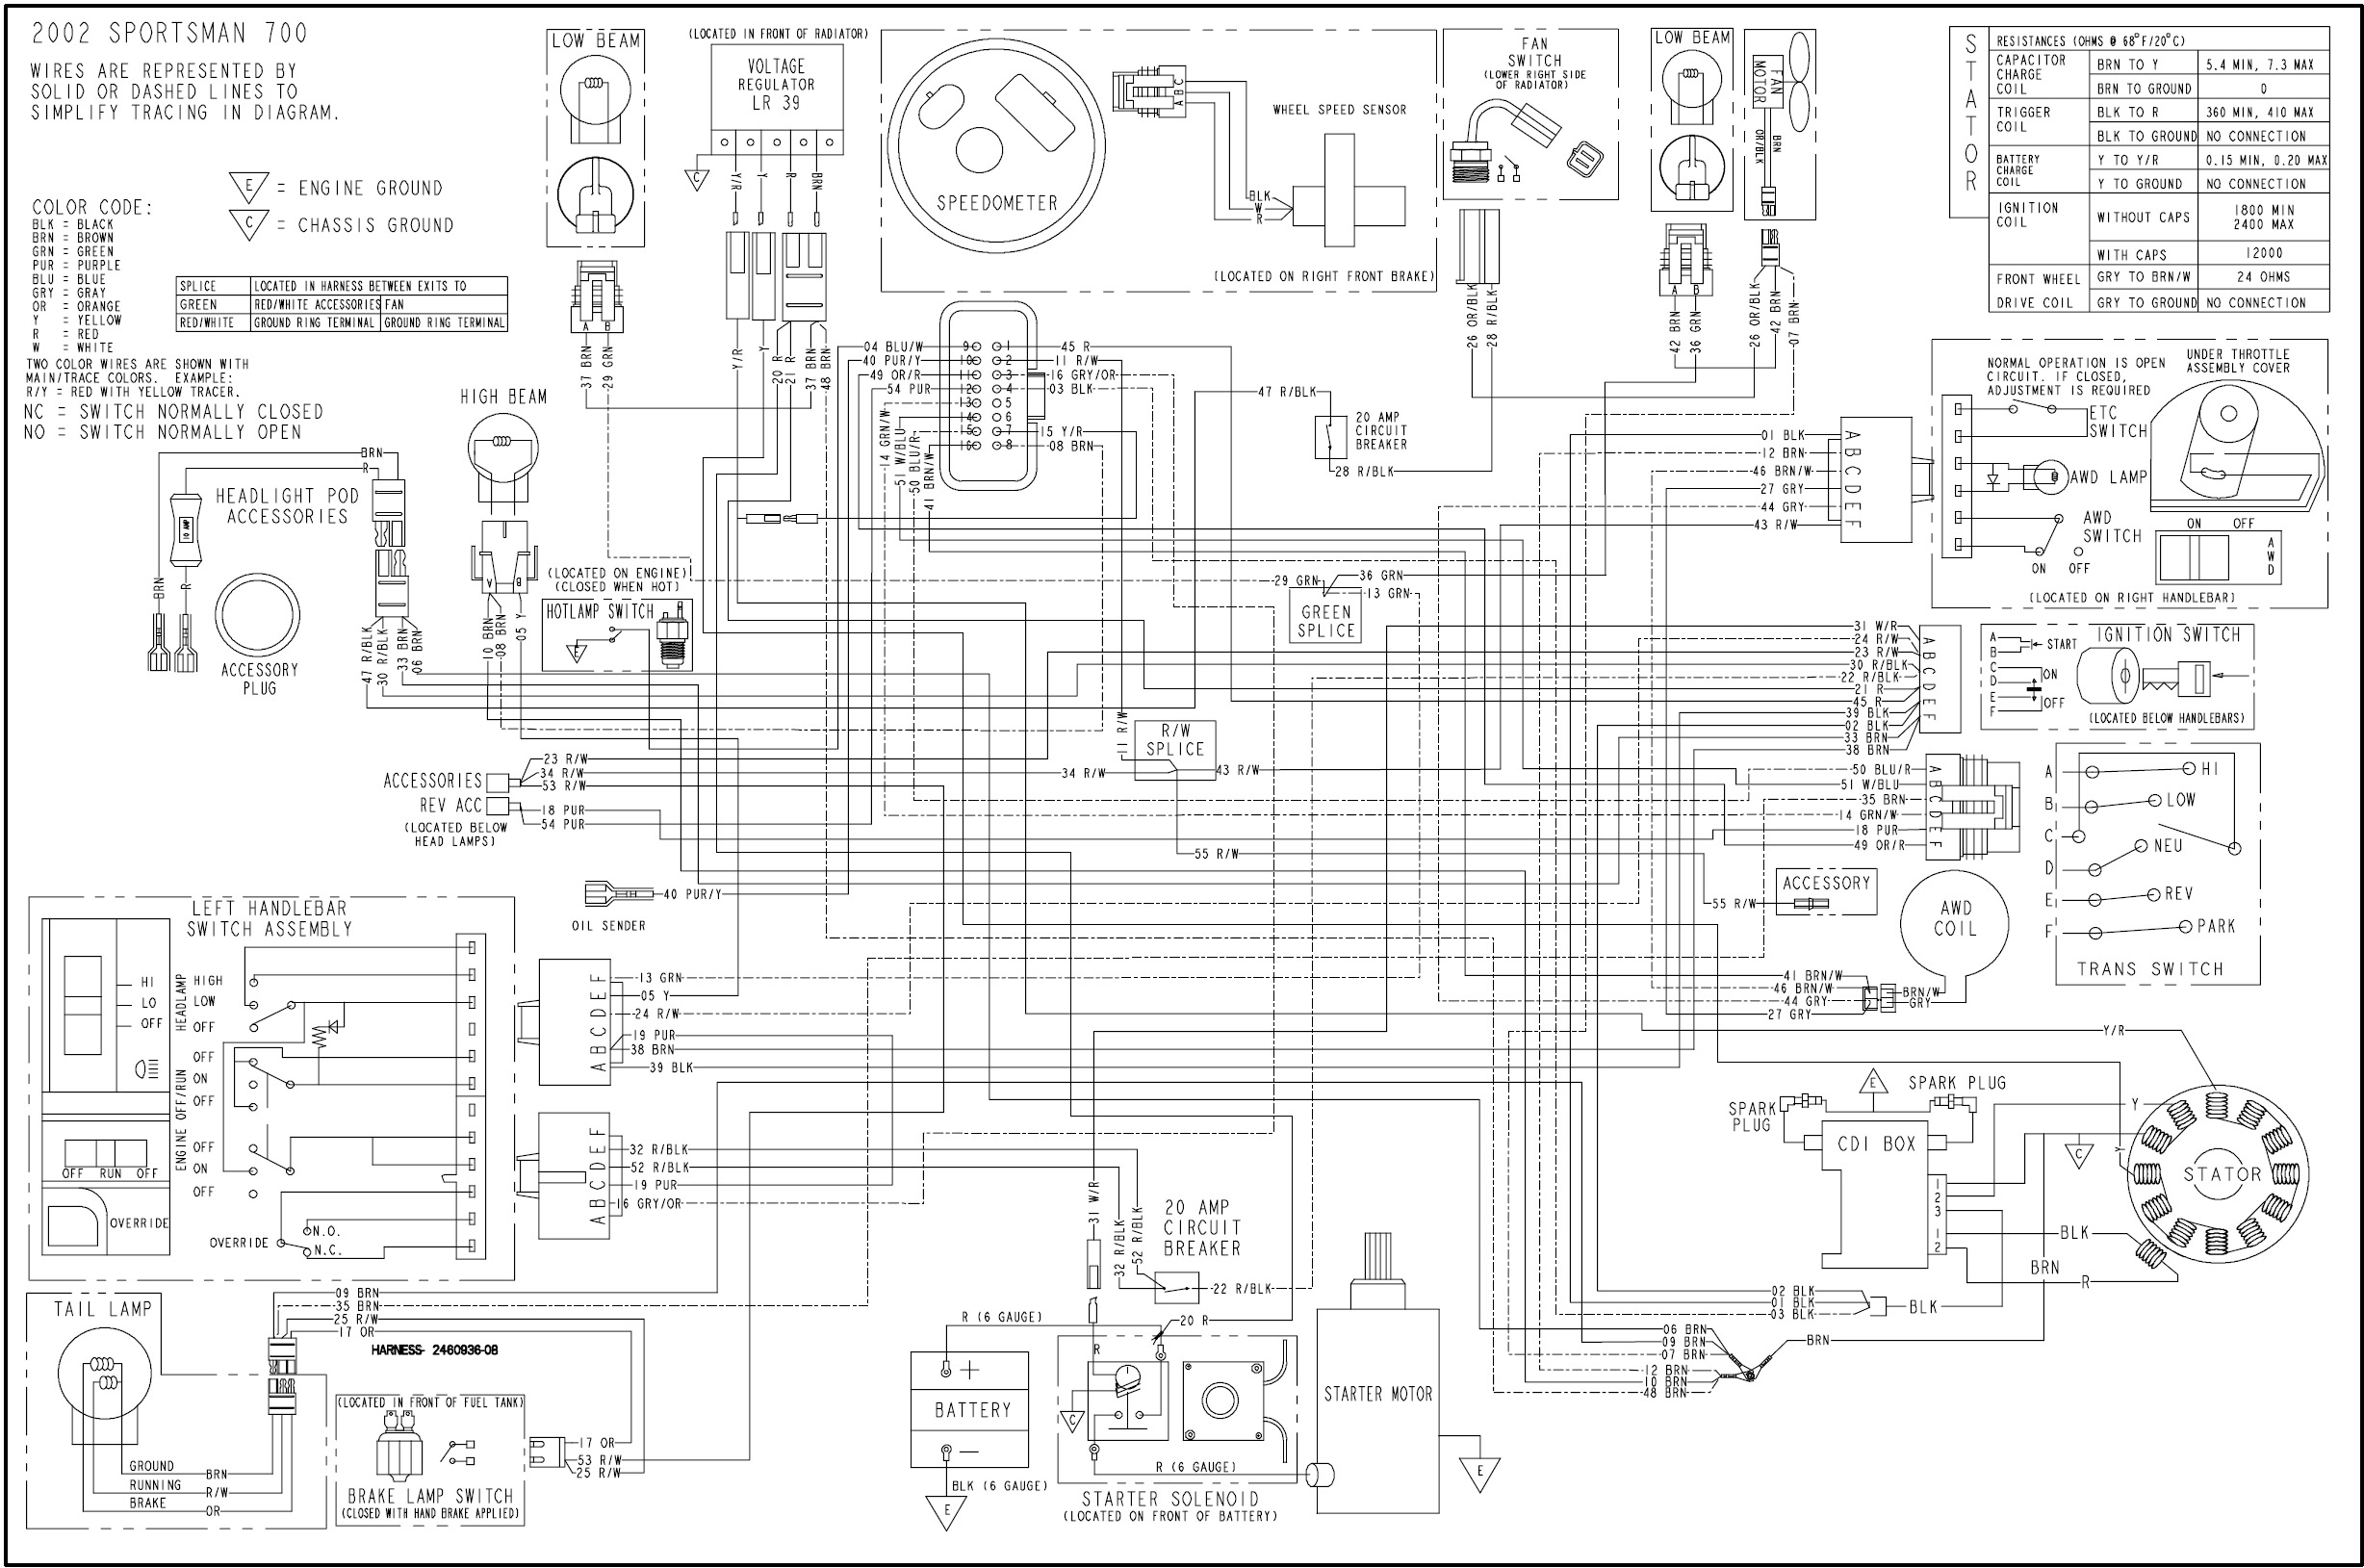 75754d1491234477 2001 sportsman 700 twin no start 2002_polaris_sportsman_700_wiring_diagram 2014 polaris outlaw 50 wiring diagram efcaviation com 2004 polaris sportsman 400 wiring diagram at cos-gaming.co